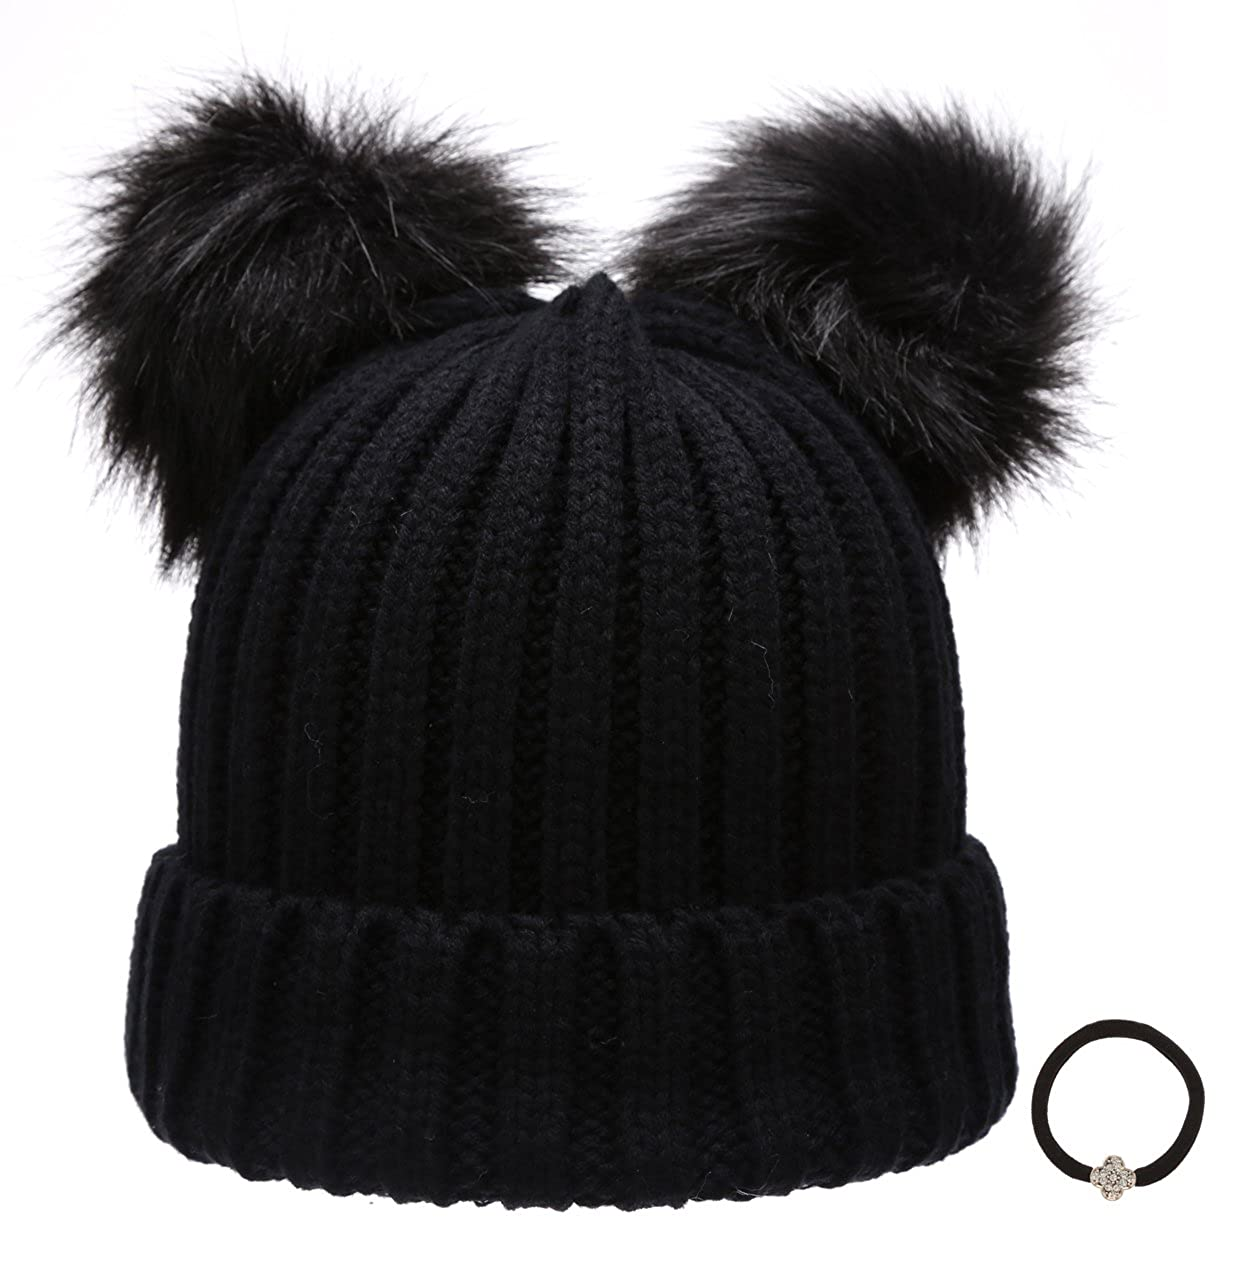 b67b95a27 Epoch Women's Winter Chunky Knit Double Pom Pom Beanie Hat with Hair Tie.